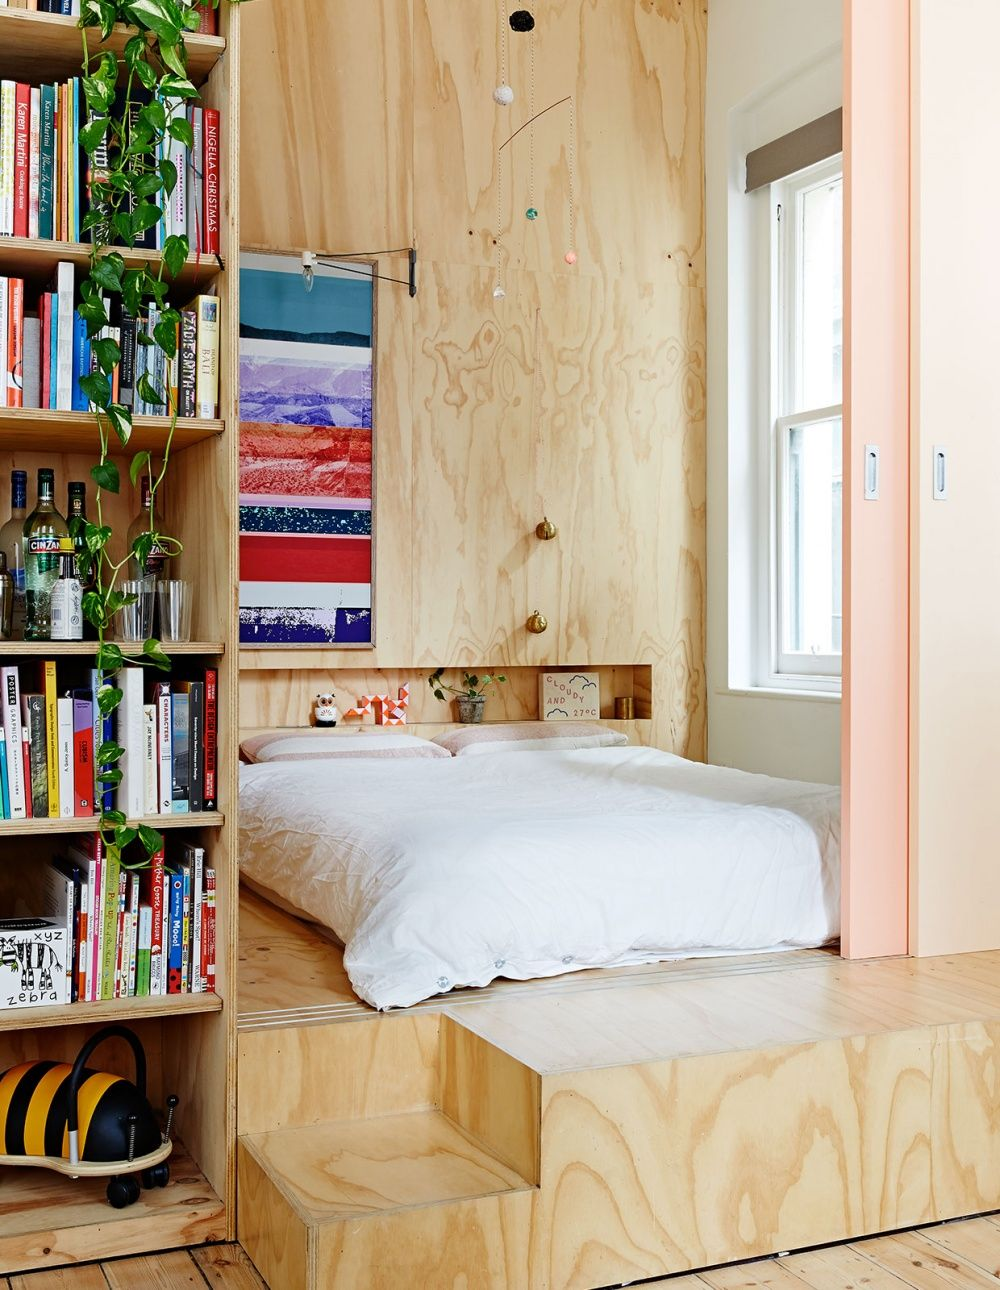 Loft style bedroom ideas  Solutions for Living Small from our Australian Homes Archive